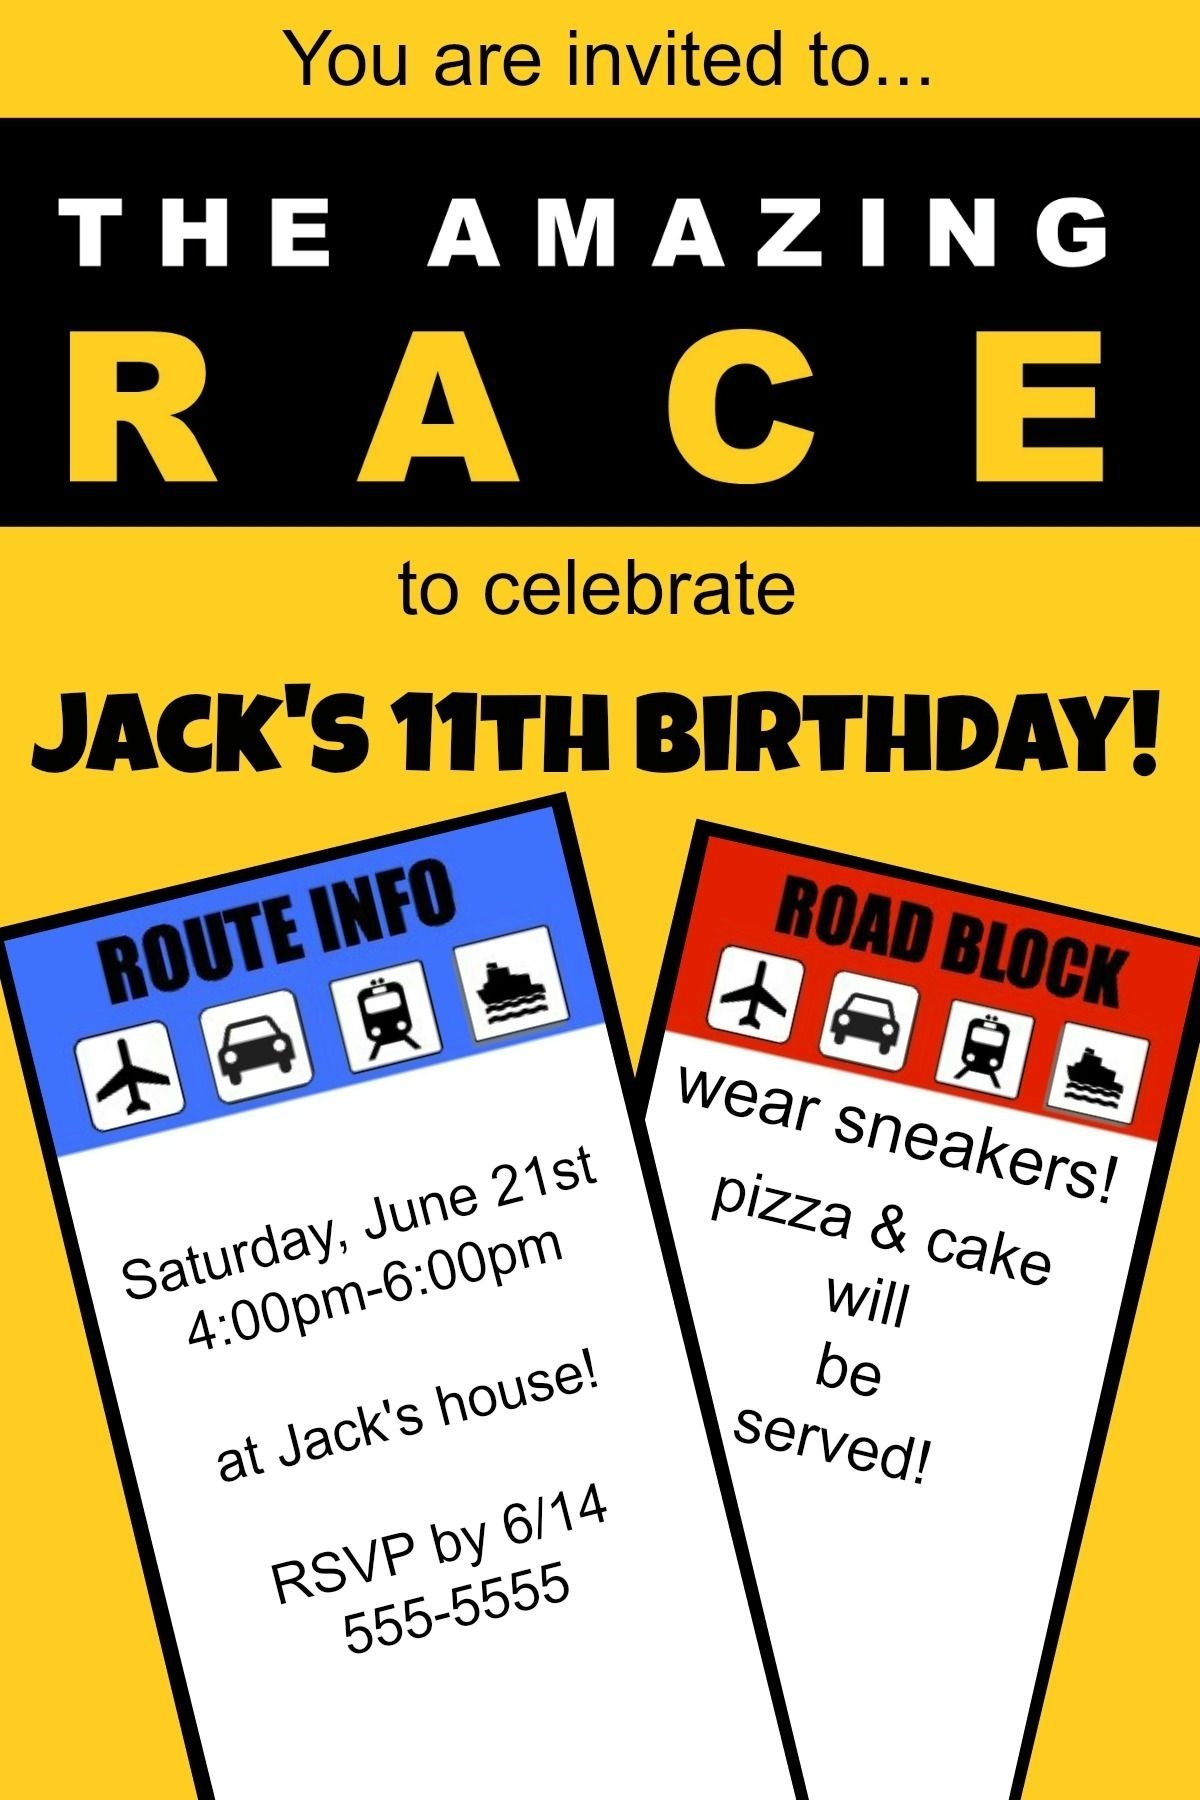 10 Pretty Amazing Race Ideas For Adults how to host an amazing race birthday party at home amazing race 2 2021